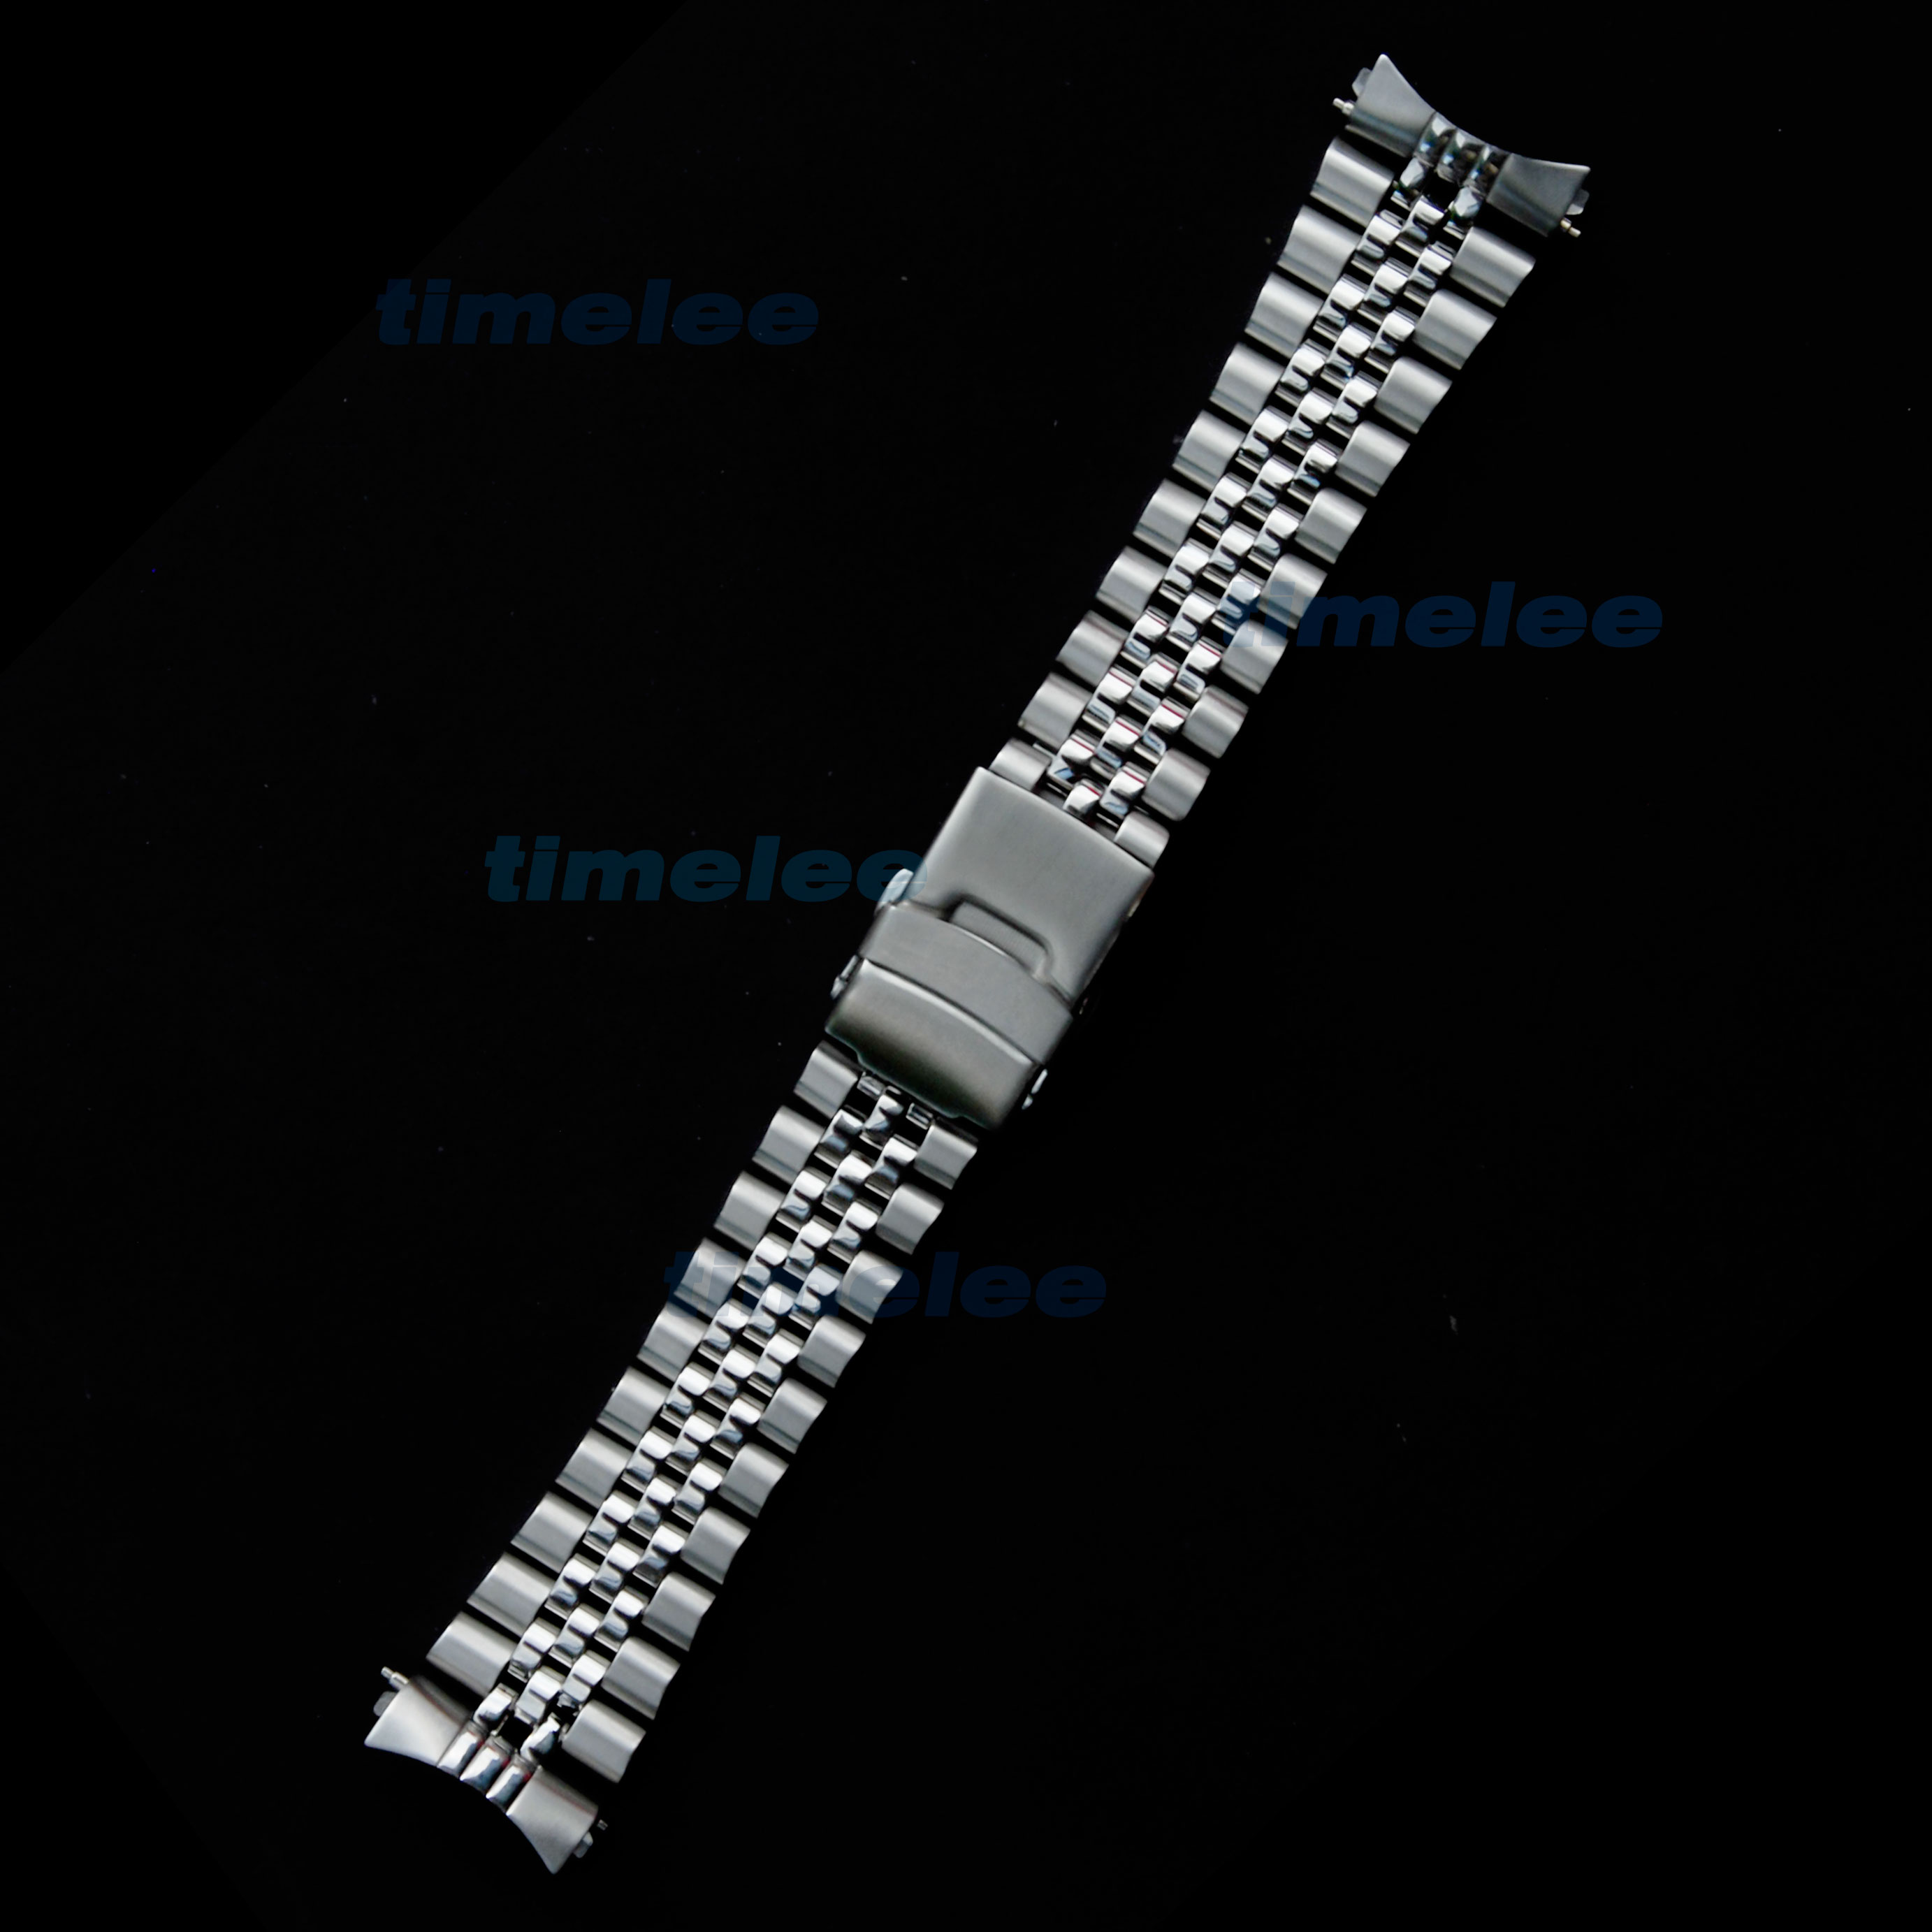 Image 5 - 22 mm Stainless Steel Watch Band Bracelets Curved end Replacement For Seiko SKX007 SKX009 SKX011 without LOGO-in Watchbands from Watches